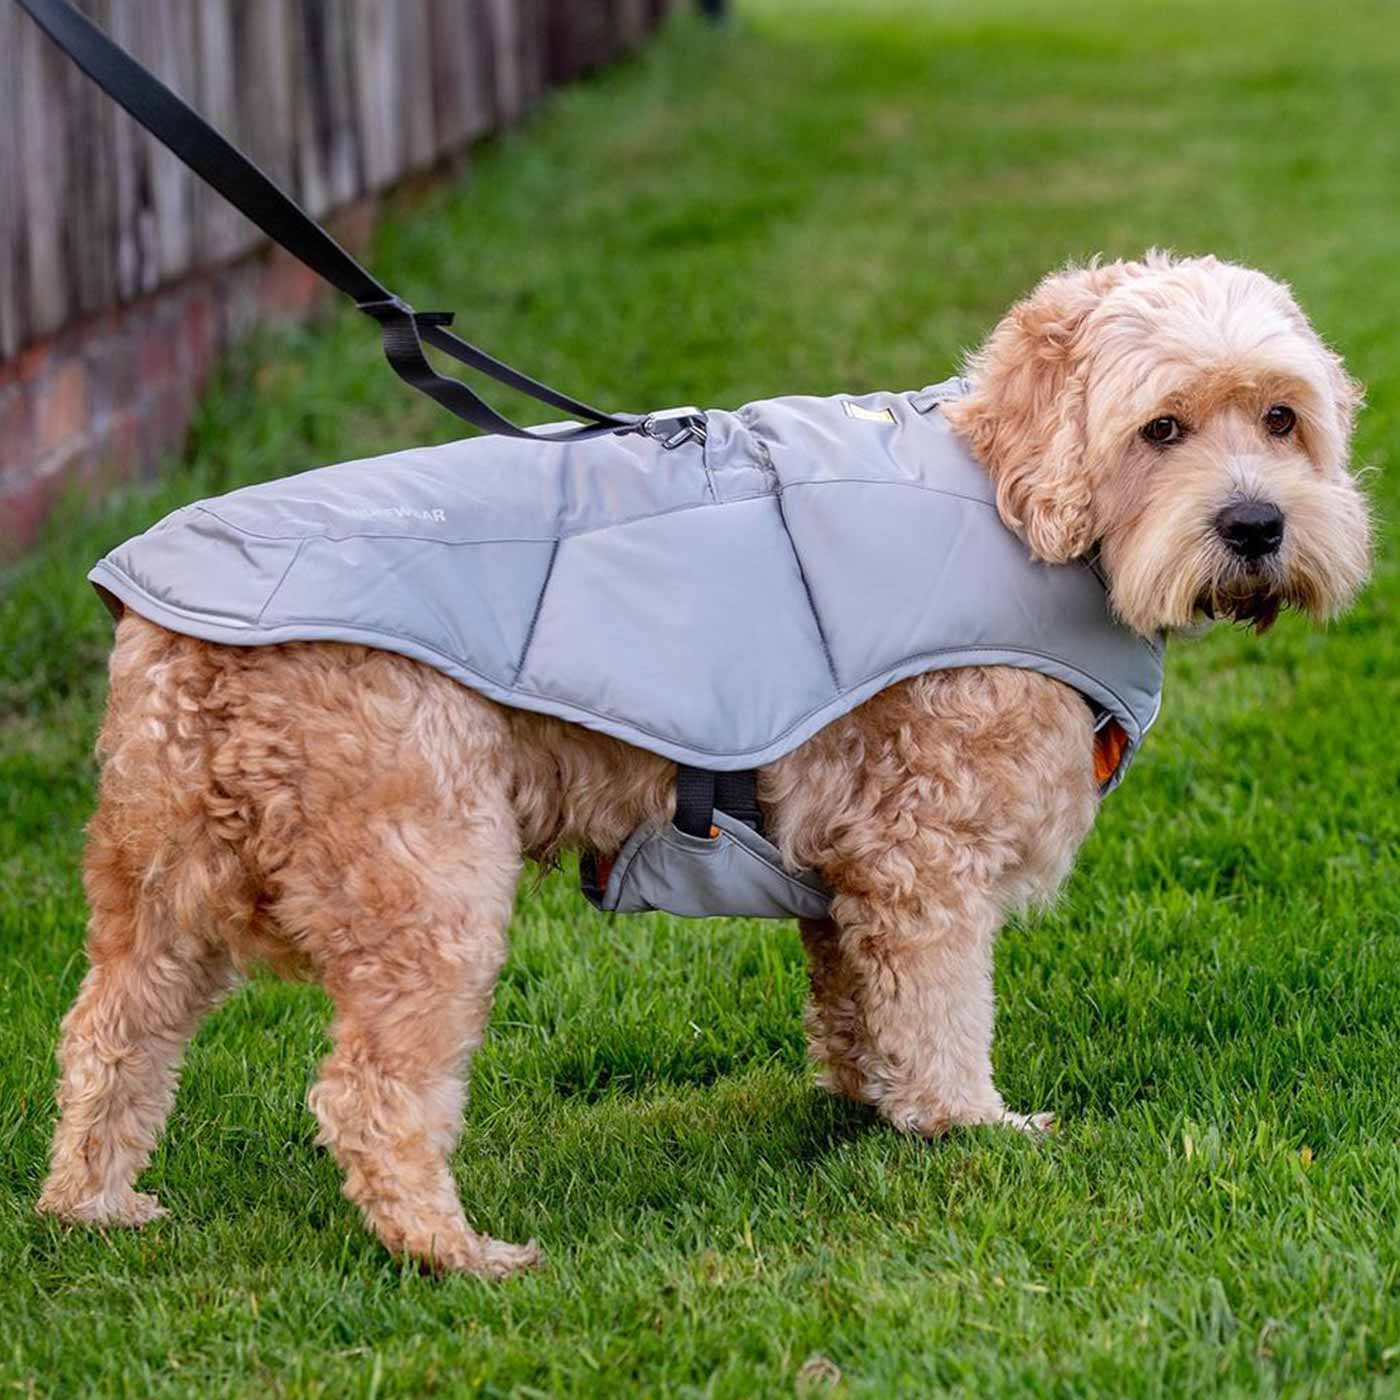 Cockapoo dog wearing the Ruffwear Qunizee Insulated Jacket for dogs in grey - Winter dog coat